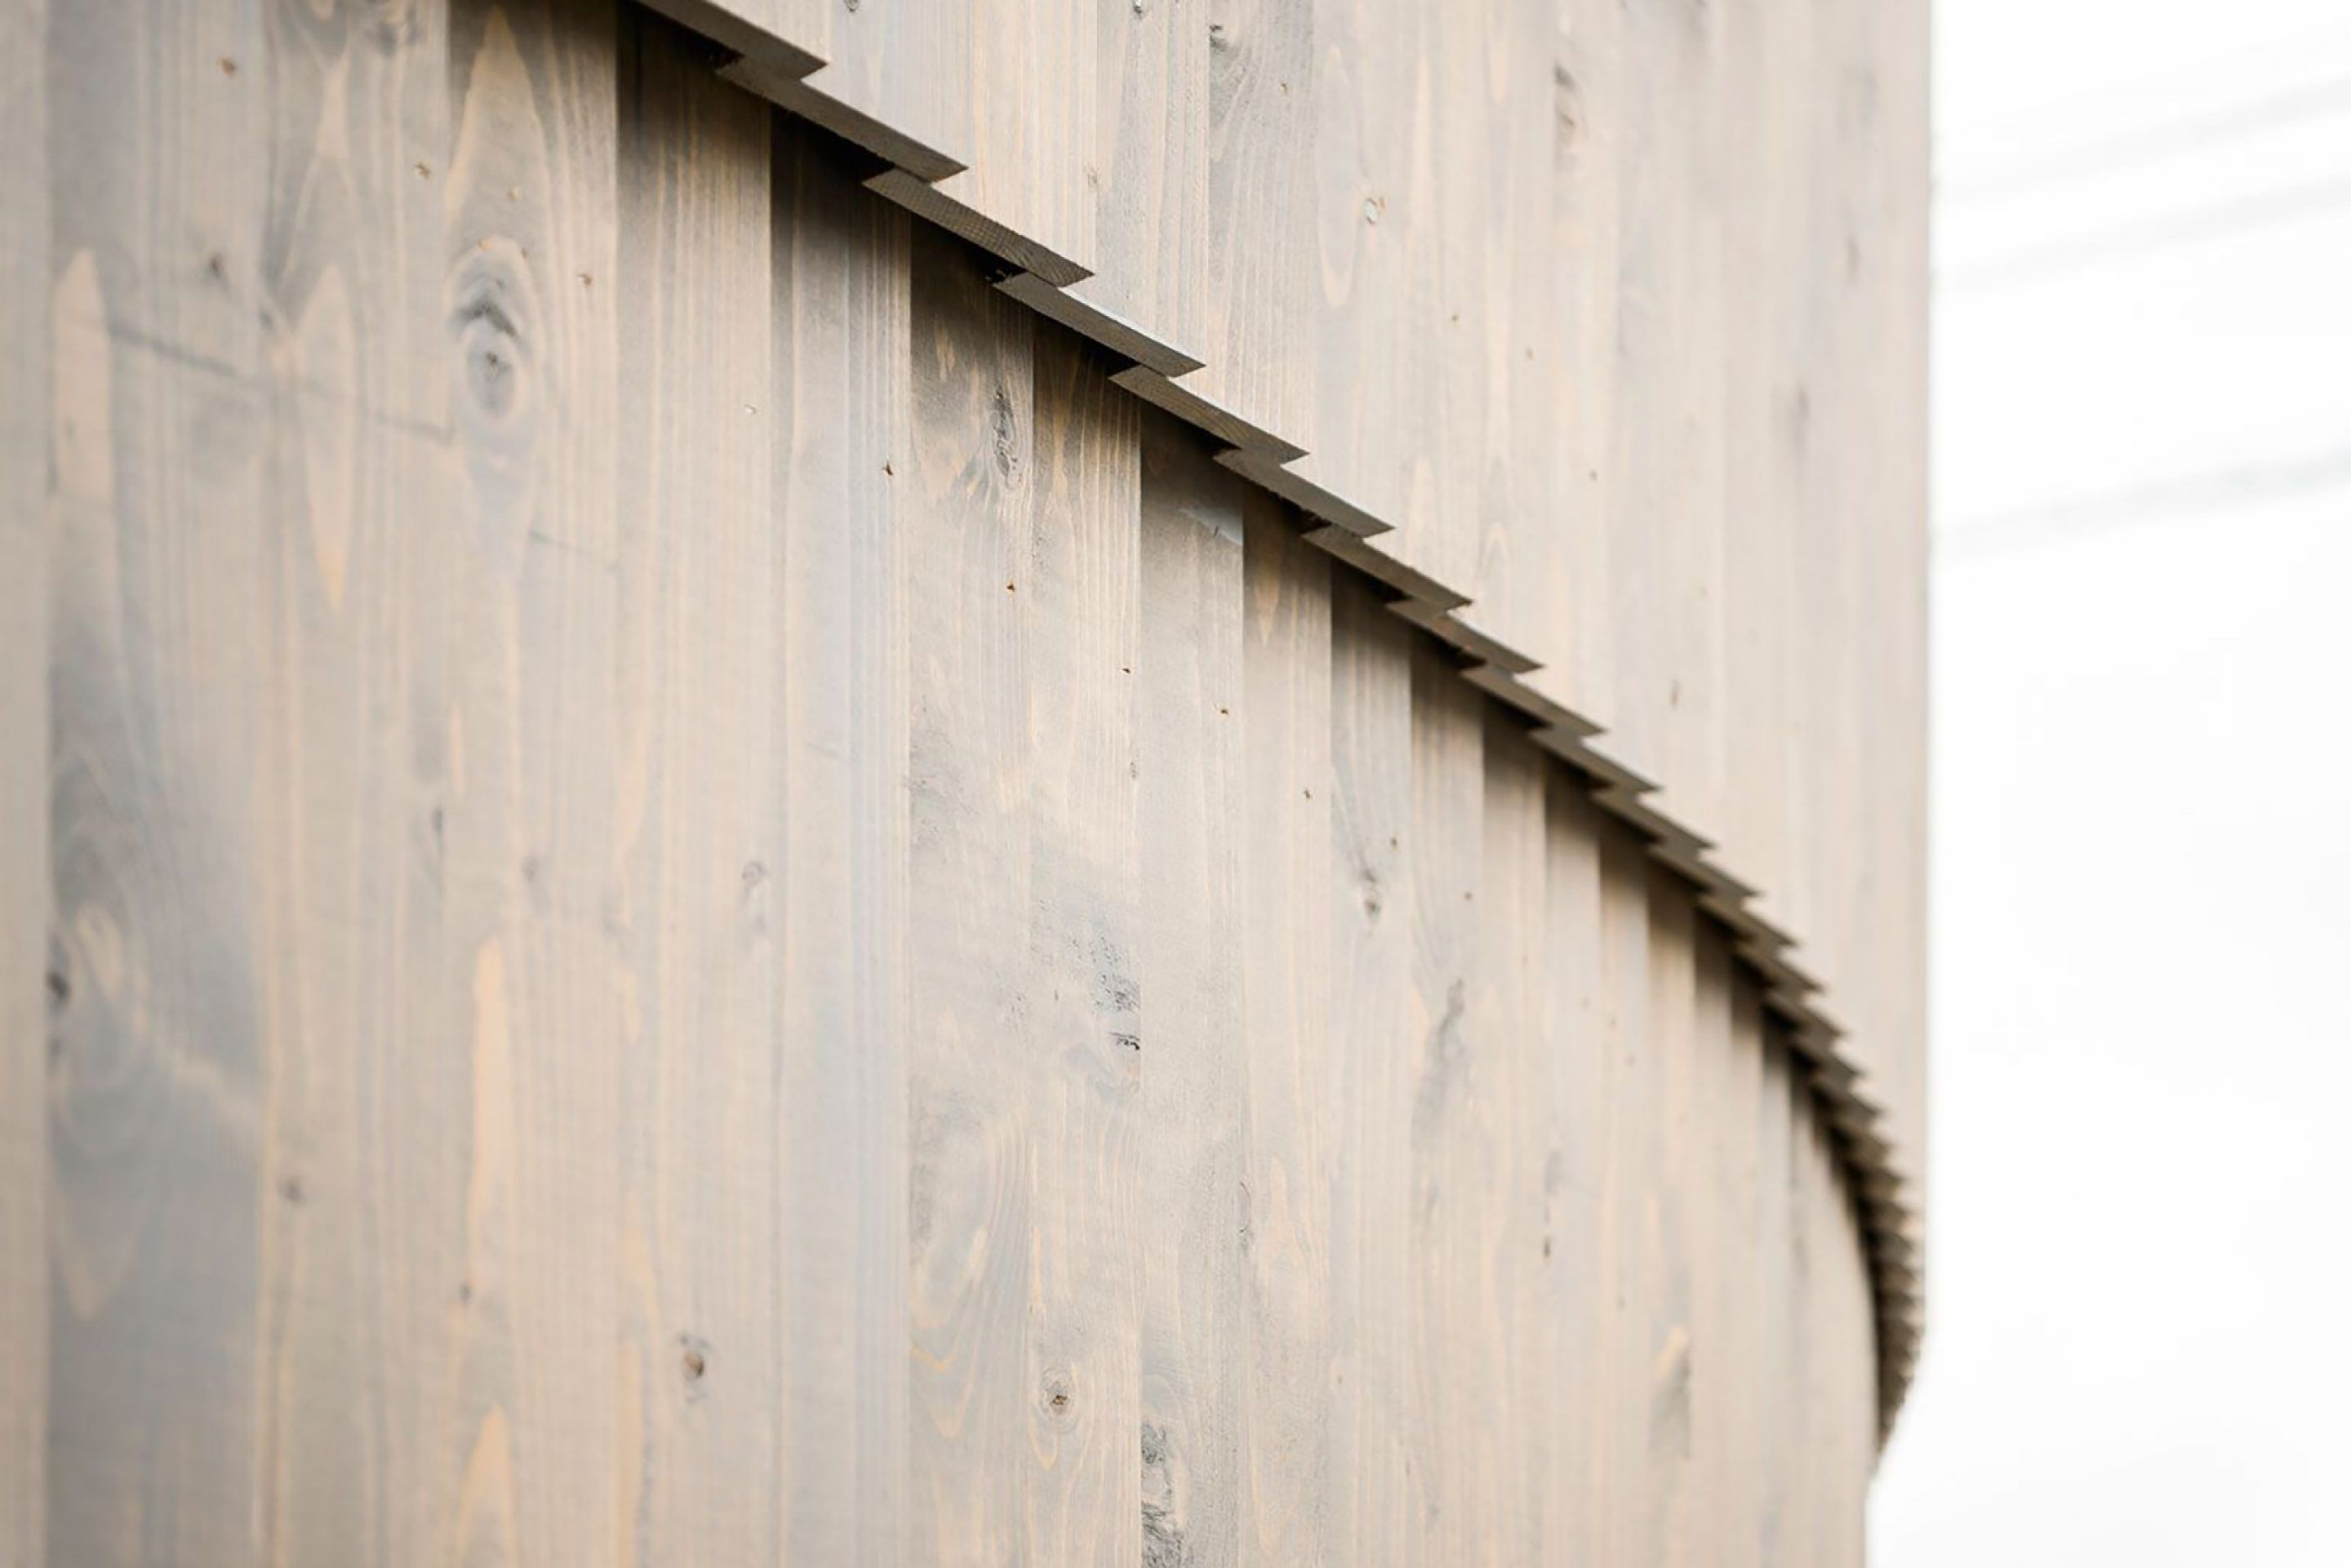 IGNANT-Architecture-Jun-Igarashi-Corridor-Of-The-Fold-6